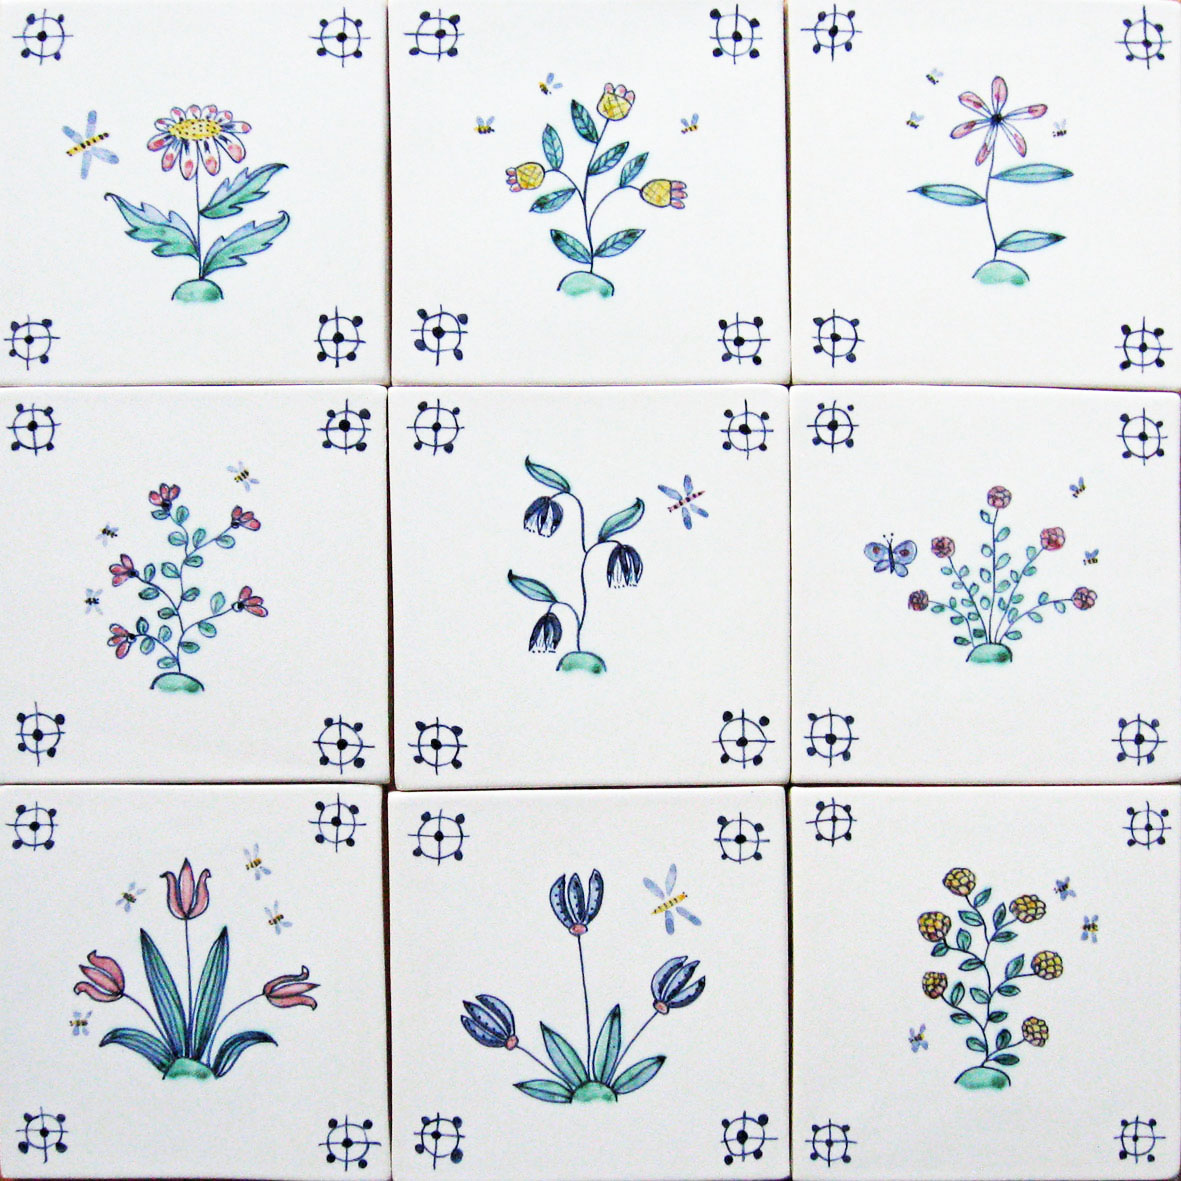 Delft flowerand bee tiles